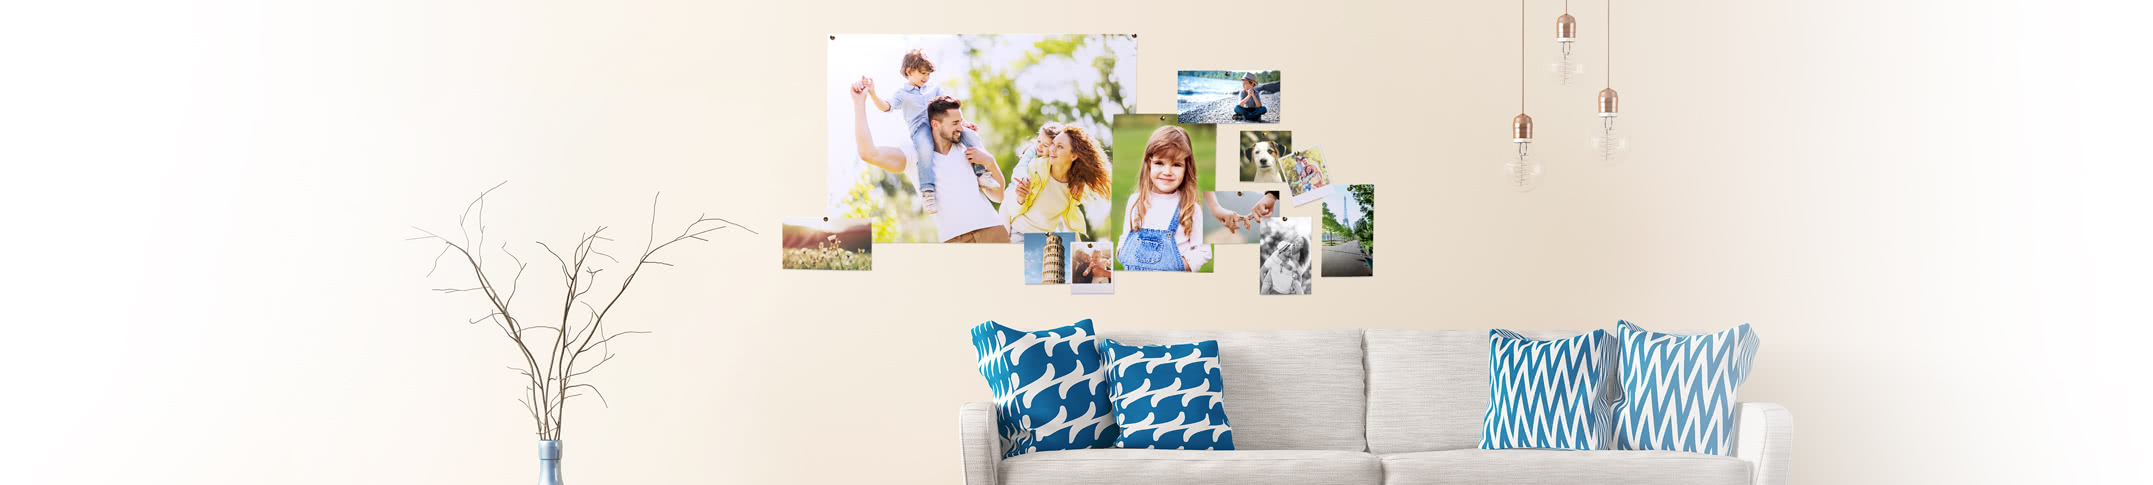 Prints & Posters - Make hardcopies of your wonderful memories!